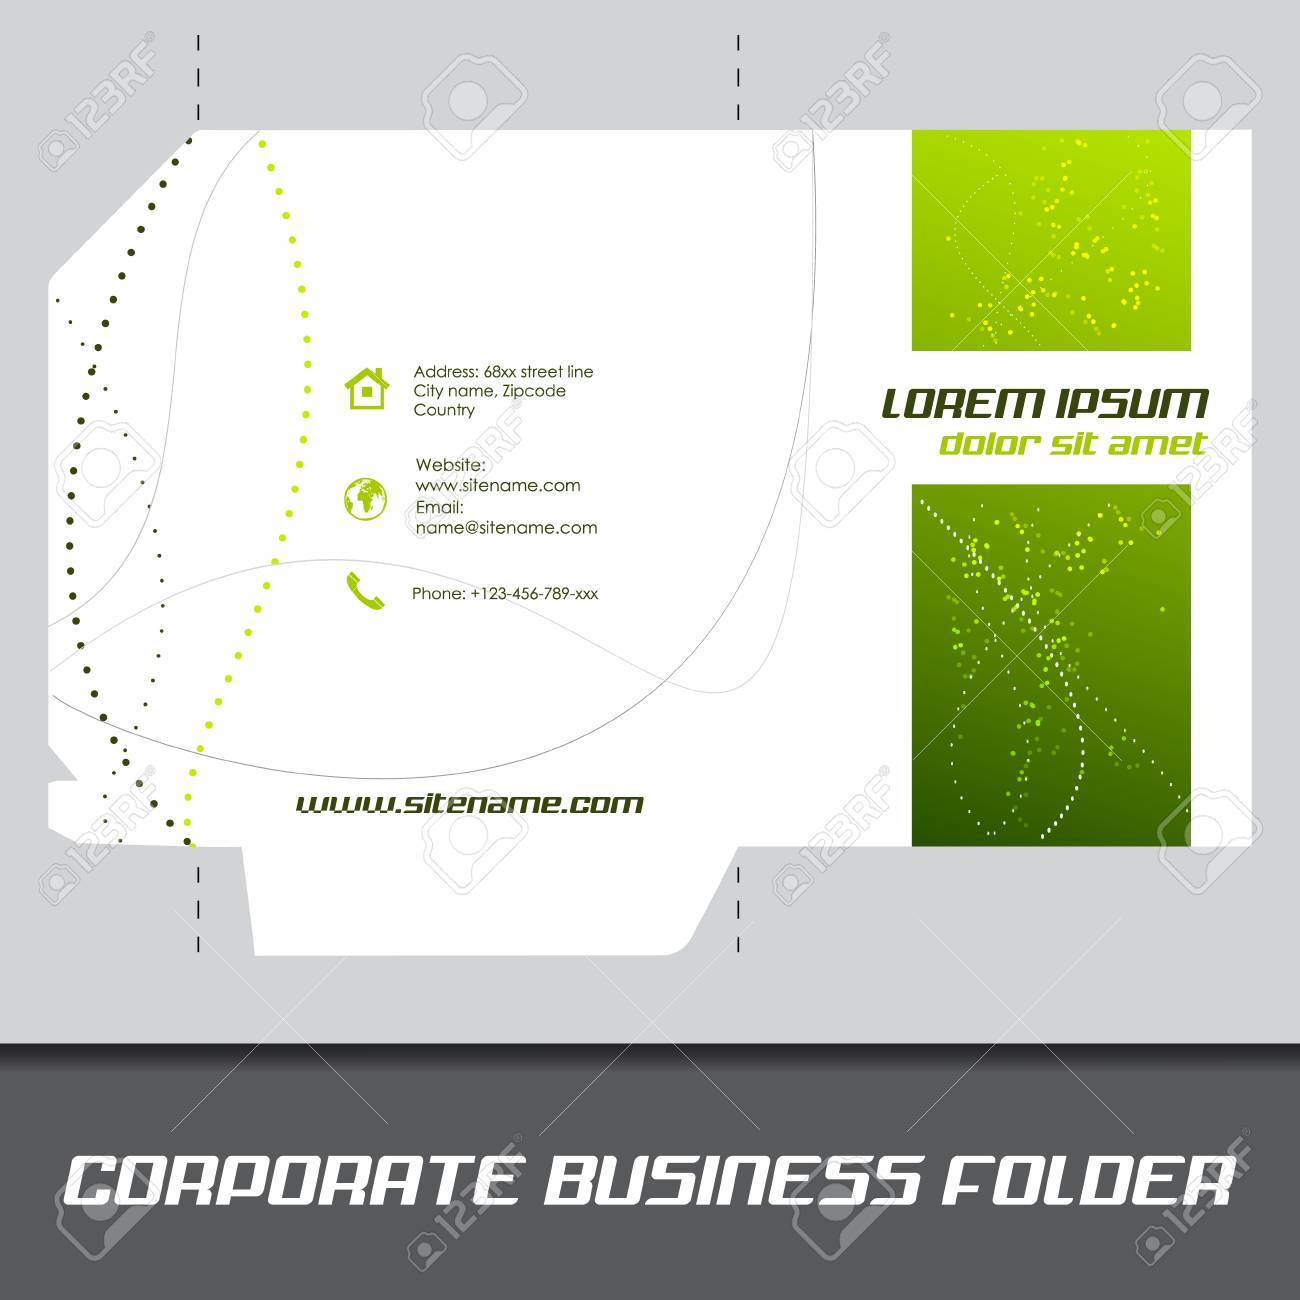 Corporate business folder or document folder template editable corporate business folder or document folder template editable vector design stock vector 33024391 wajeb Choice Image